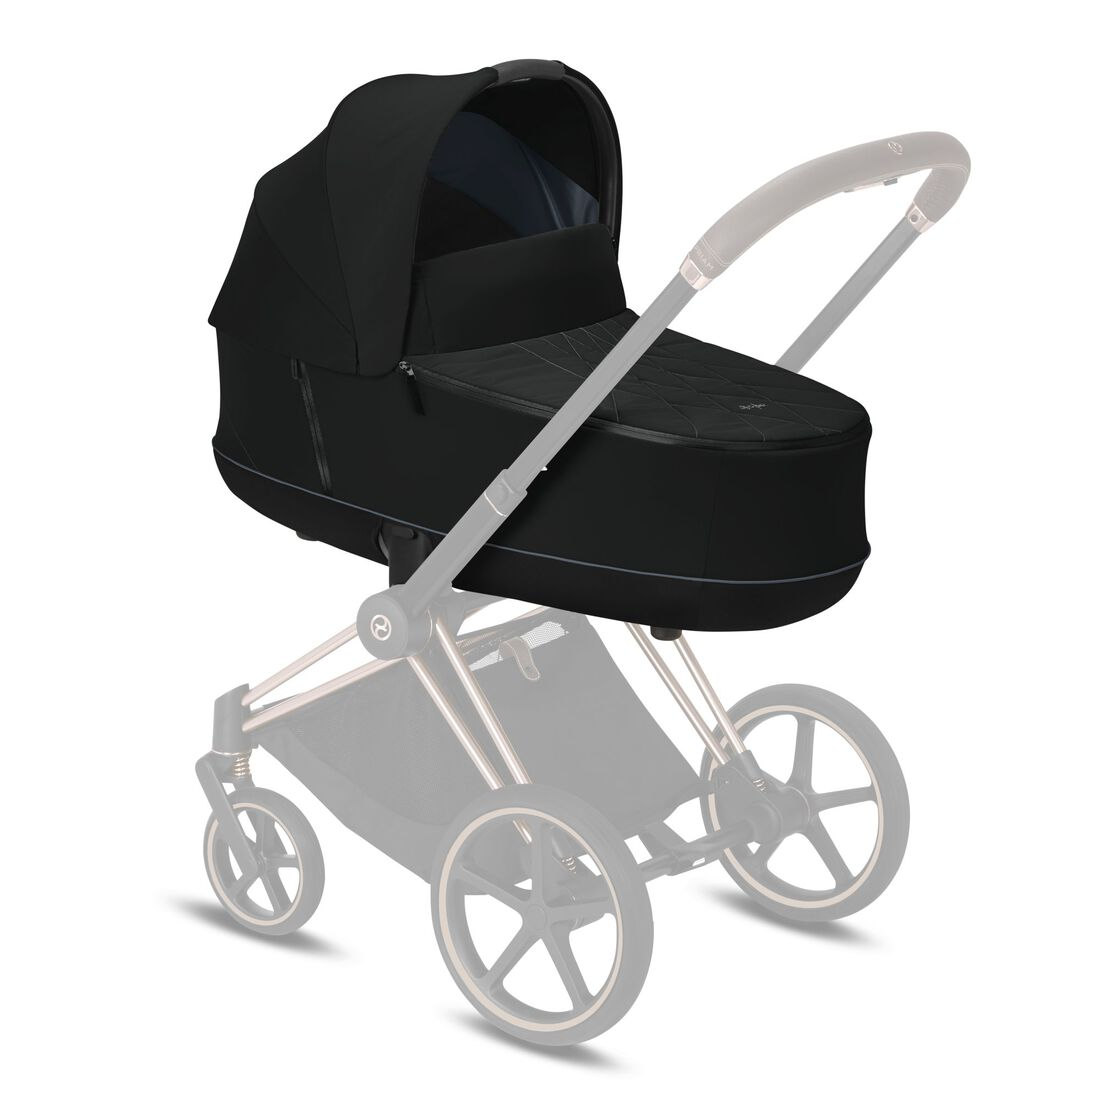 CYBEX Configure Priam Set: Frame, Lux Carry Cot, Cloud Z i-Size, Seat Pack in  large image number 6